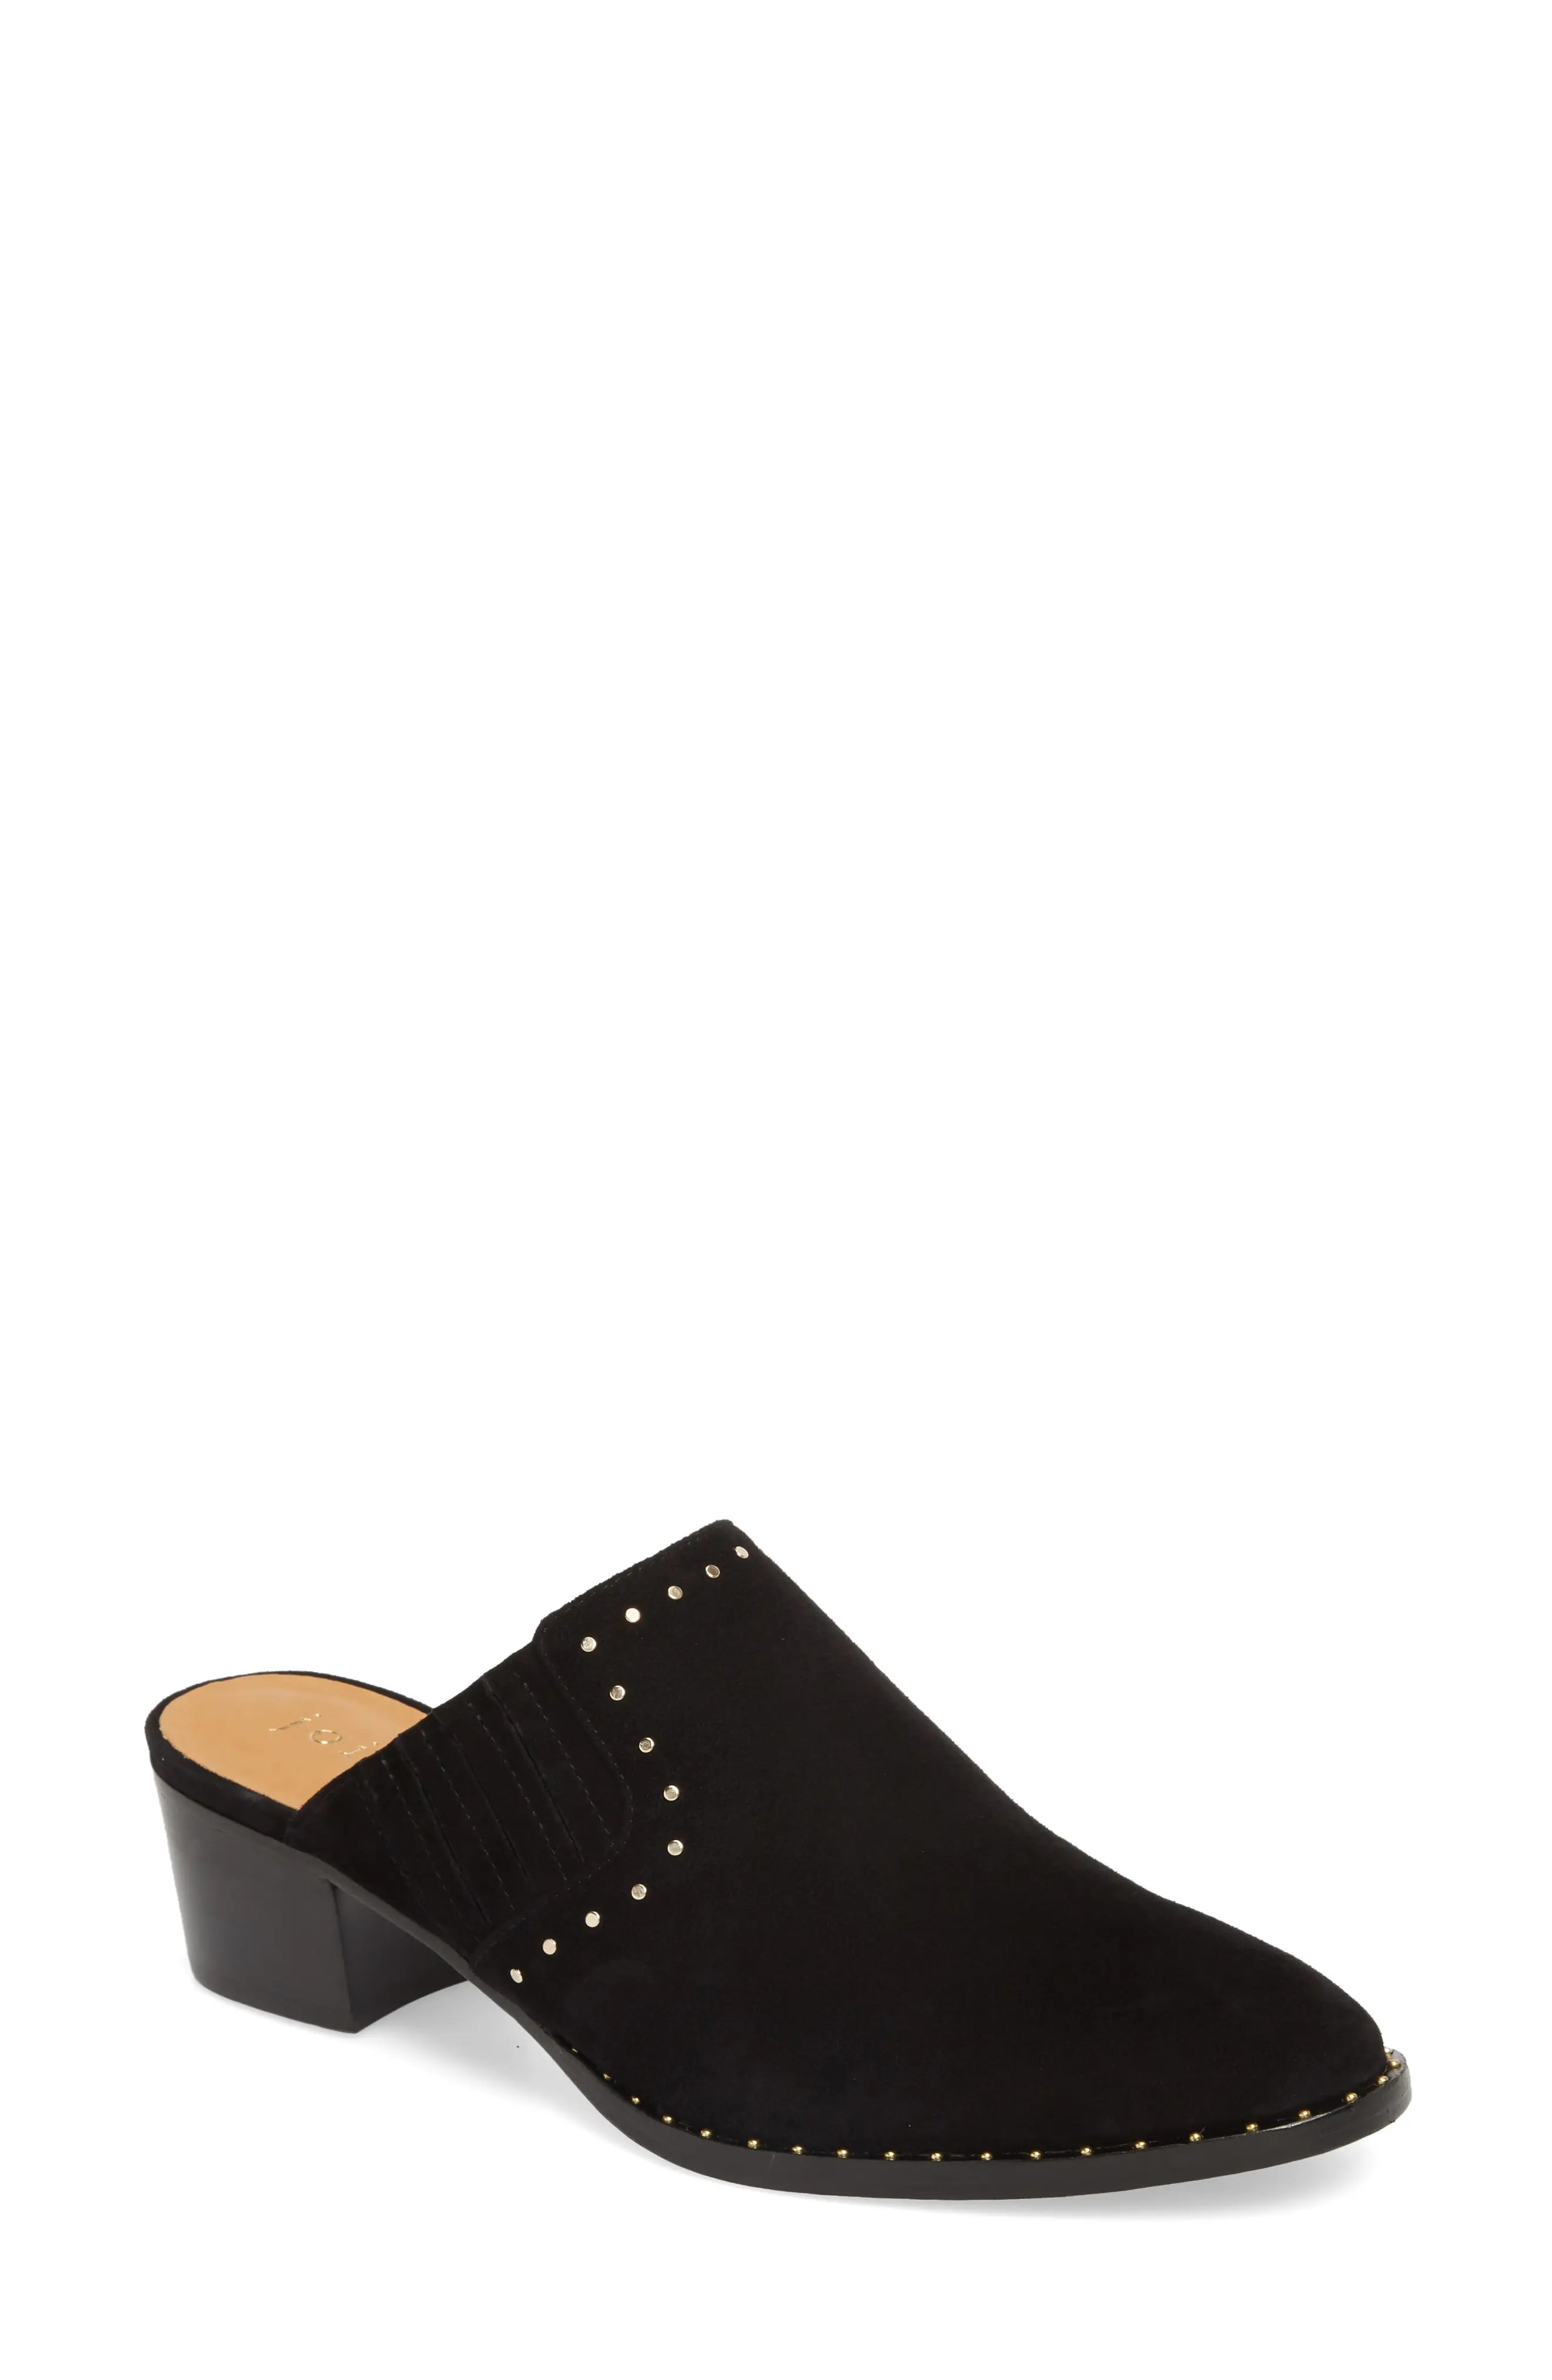 Joie fayla studded mule women also   shoes nordstrom rh shoprdstrom